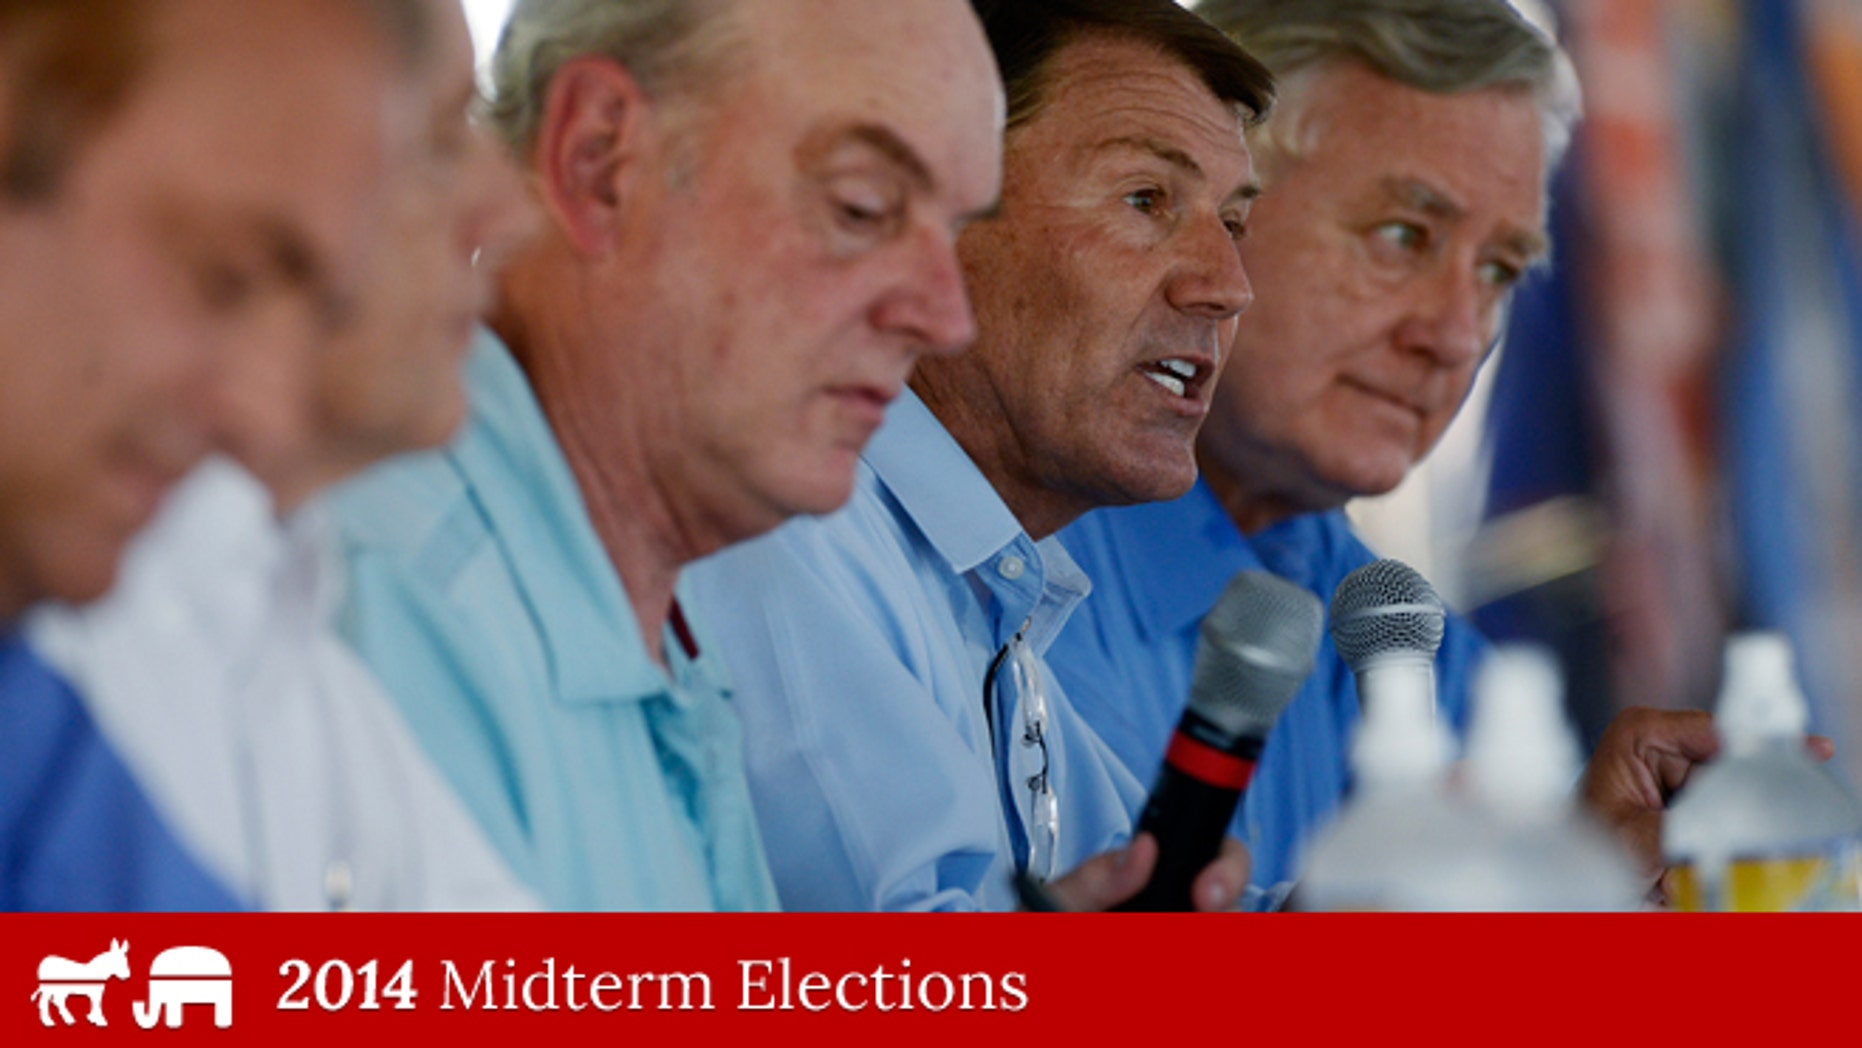 Aug. 27, 2014: South Dakota GOP Senate candidate Mike Rounds speaks while debating rivals Rick Weiland, Larry Pressler and Gordon Howie at Dakotafest in Mitchell, S.D.